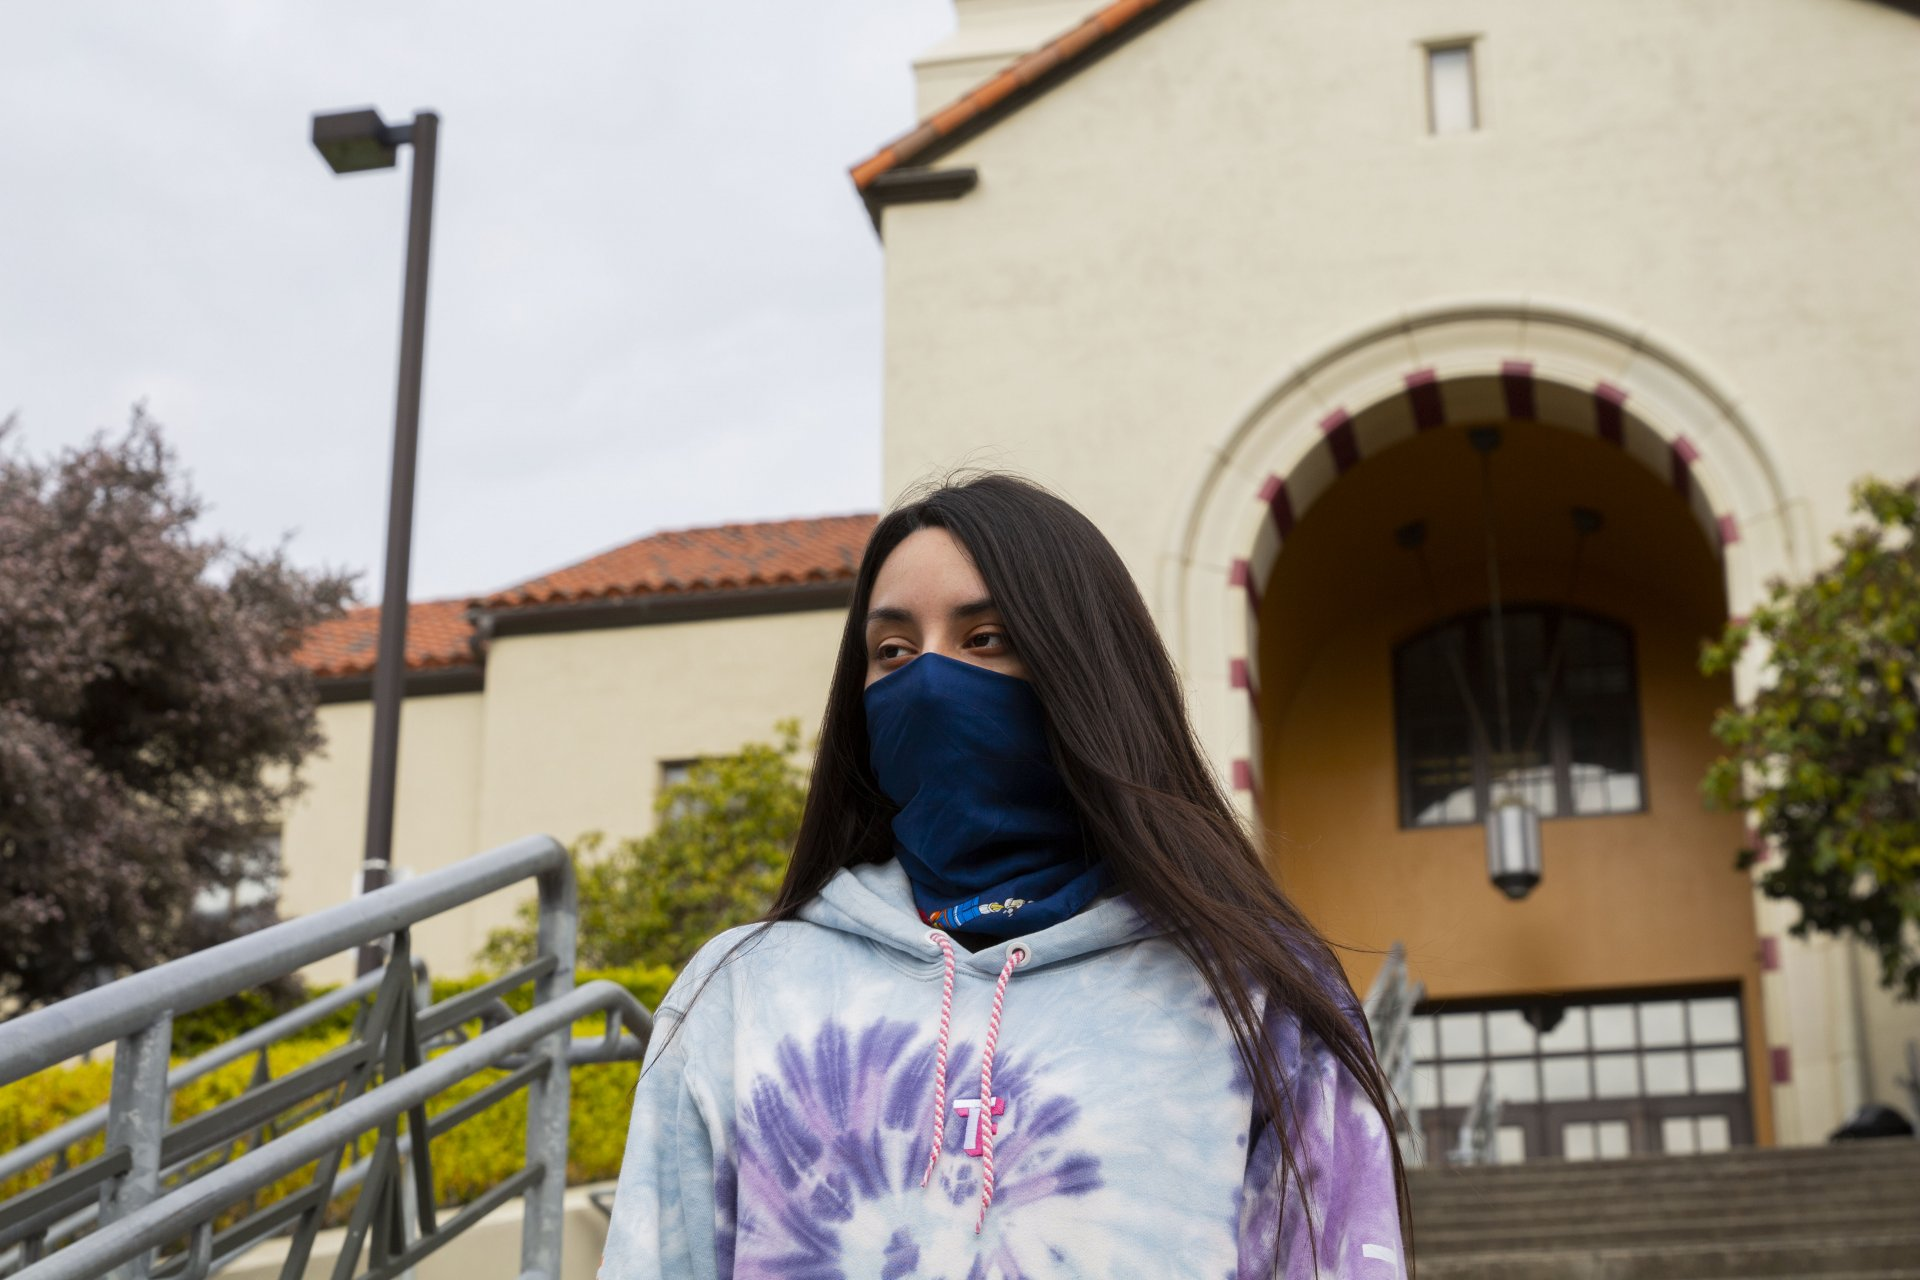 Junior criminology and justice major Samantha Bosch poses for a photo wearing her mask on the steps of Founders Hall April 20, 2020. | Photo by Thomas Lal